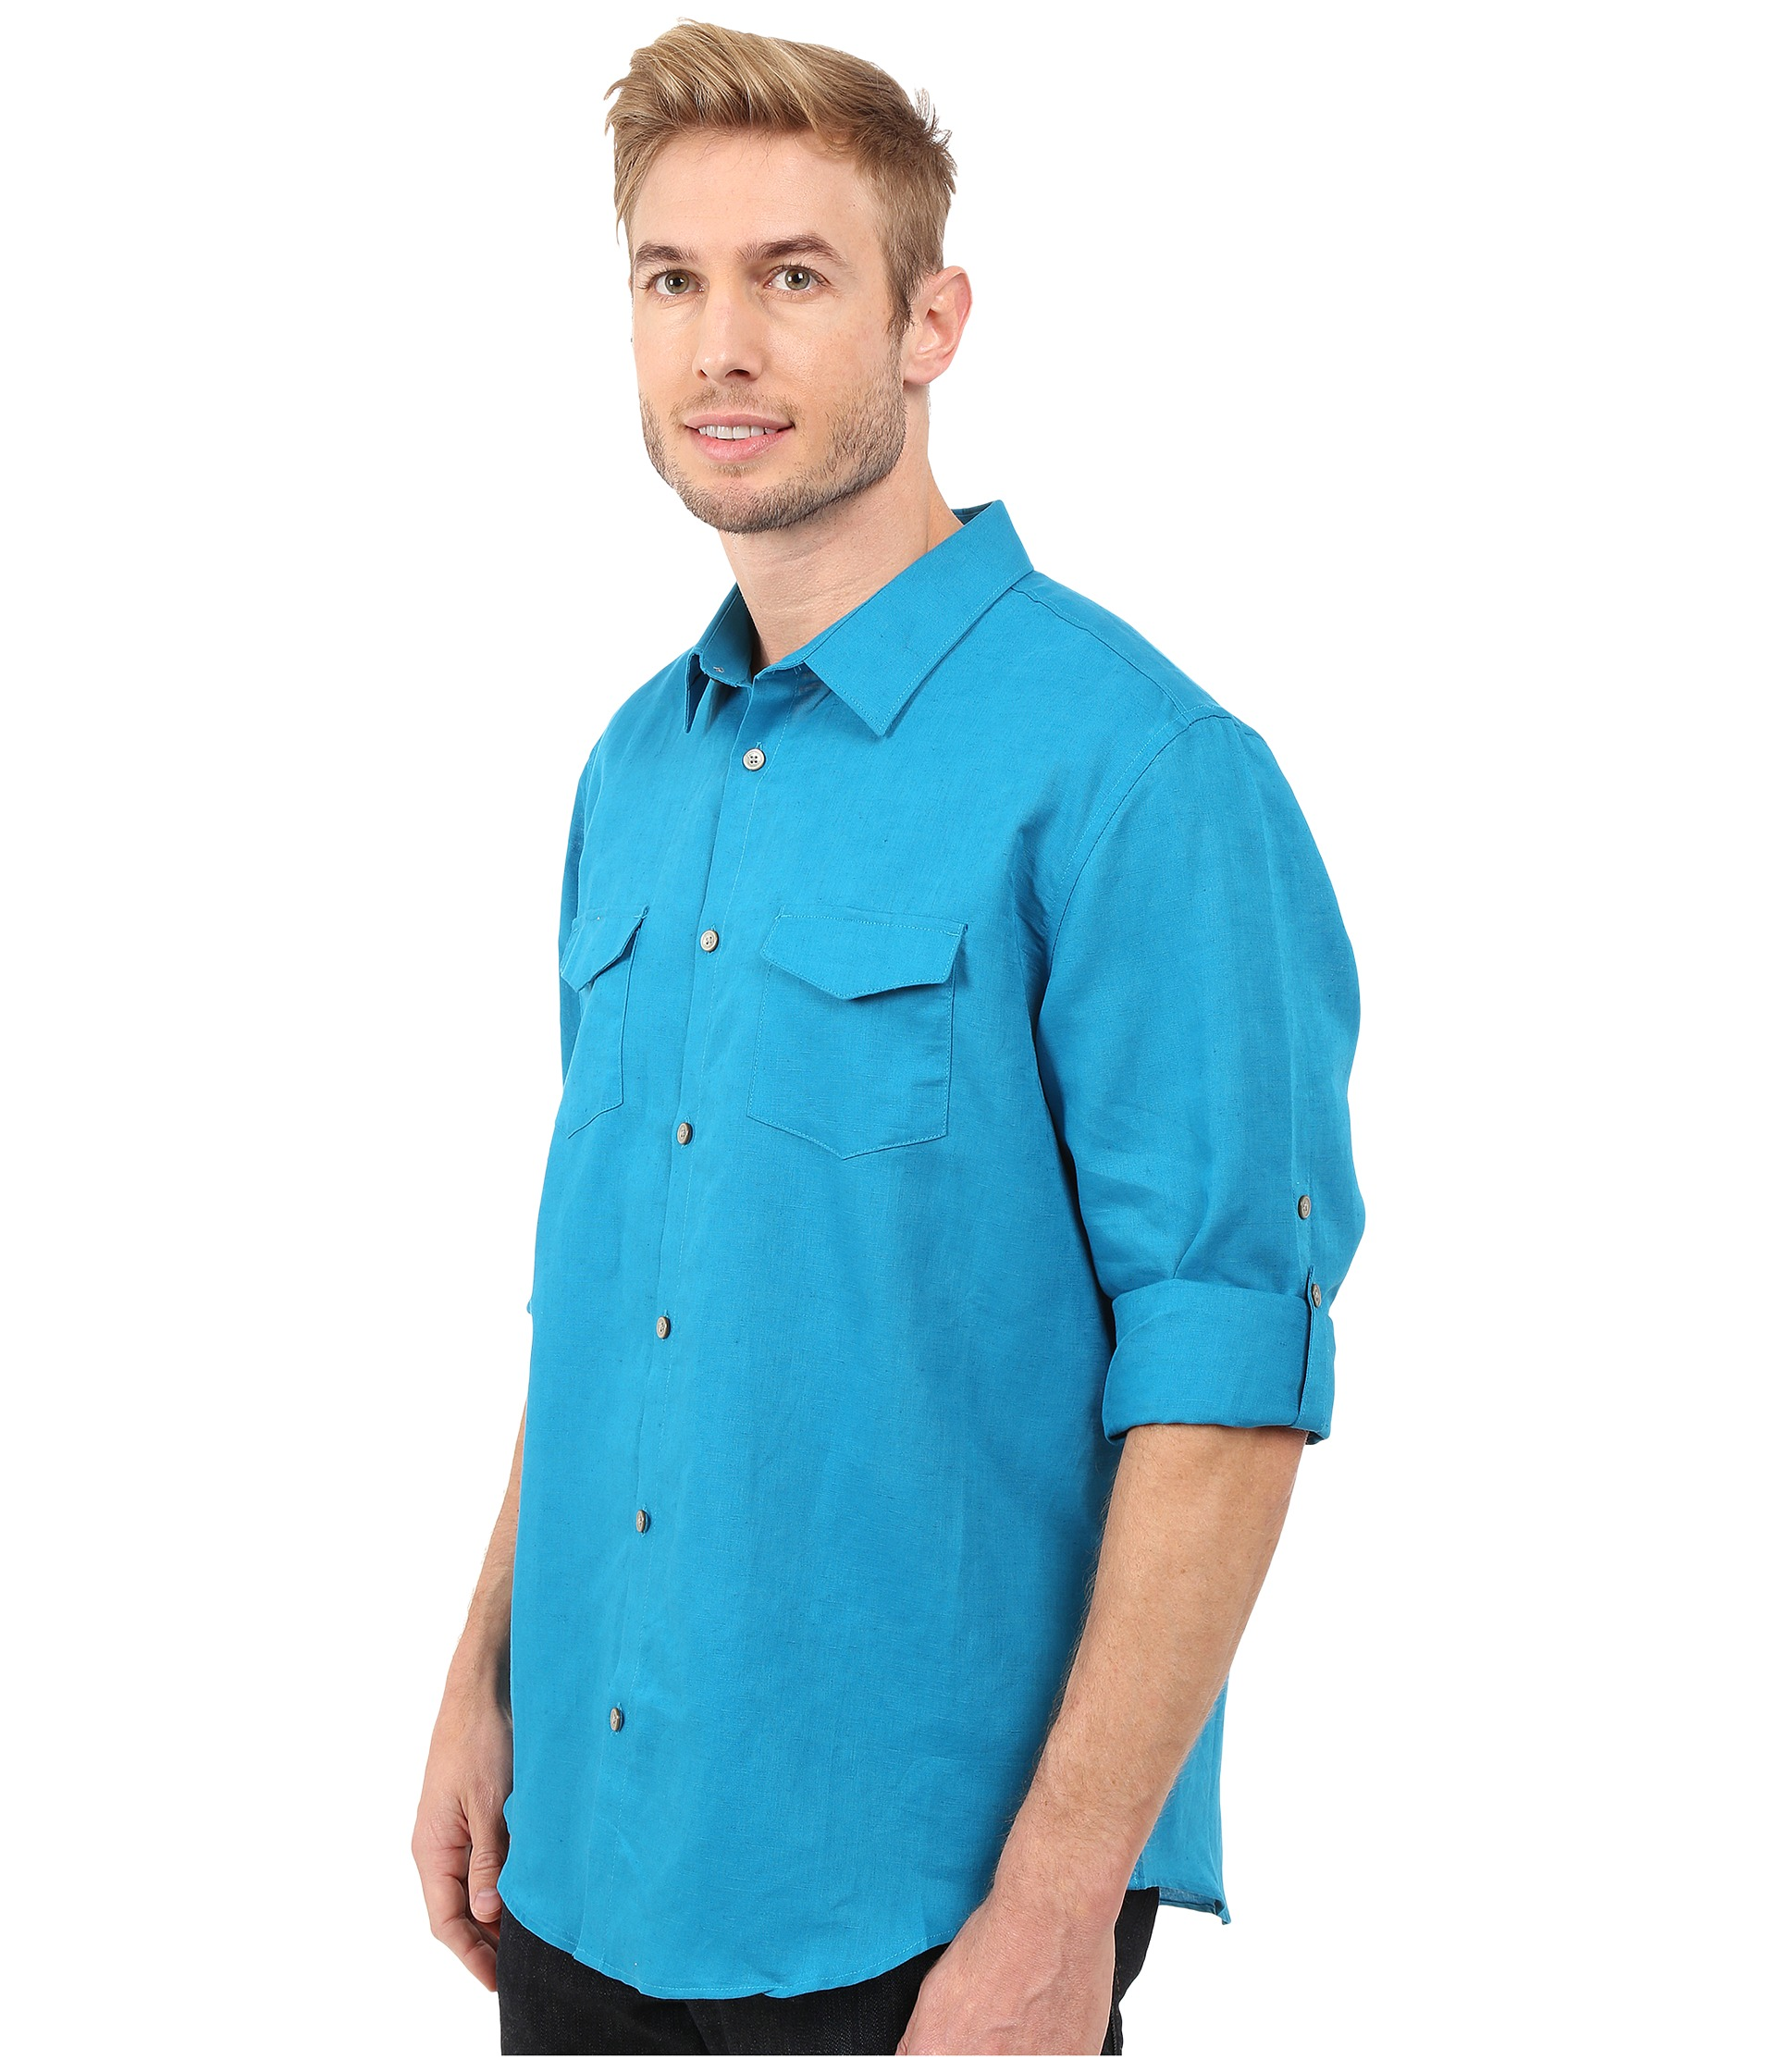 Calvin klein classic fit linen roll up sleeve shirt for Calvin klein full sleeve t shirt